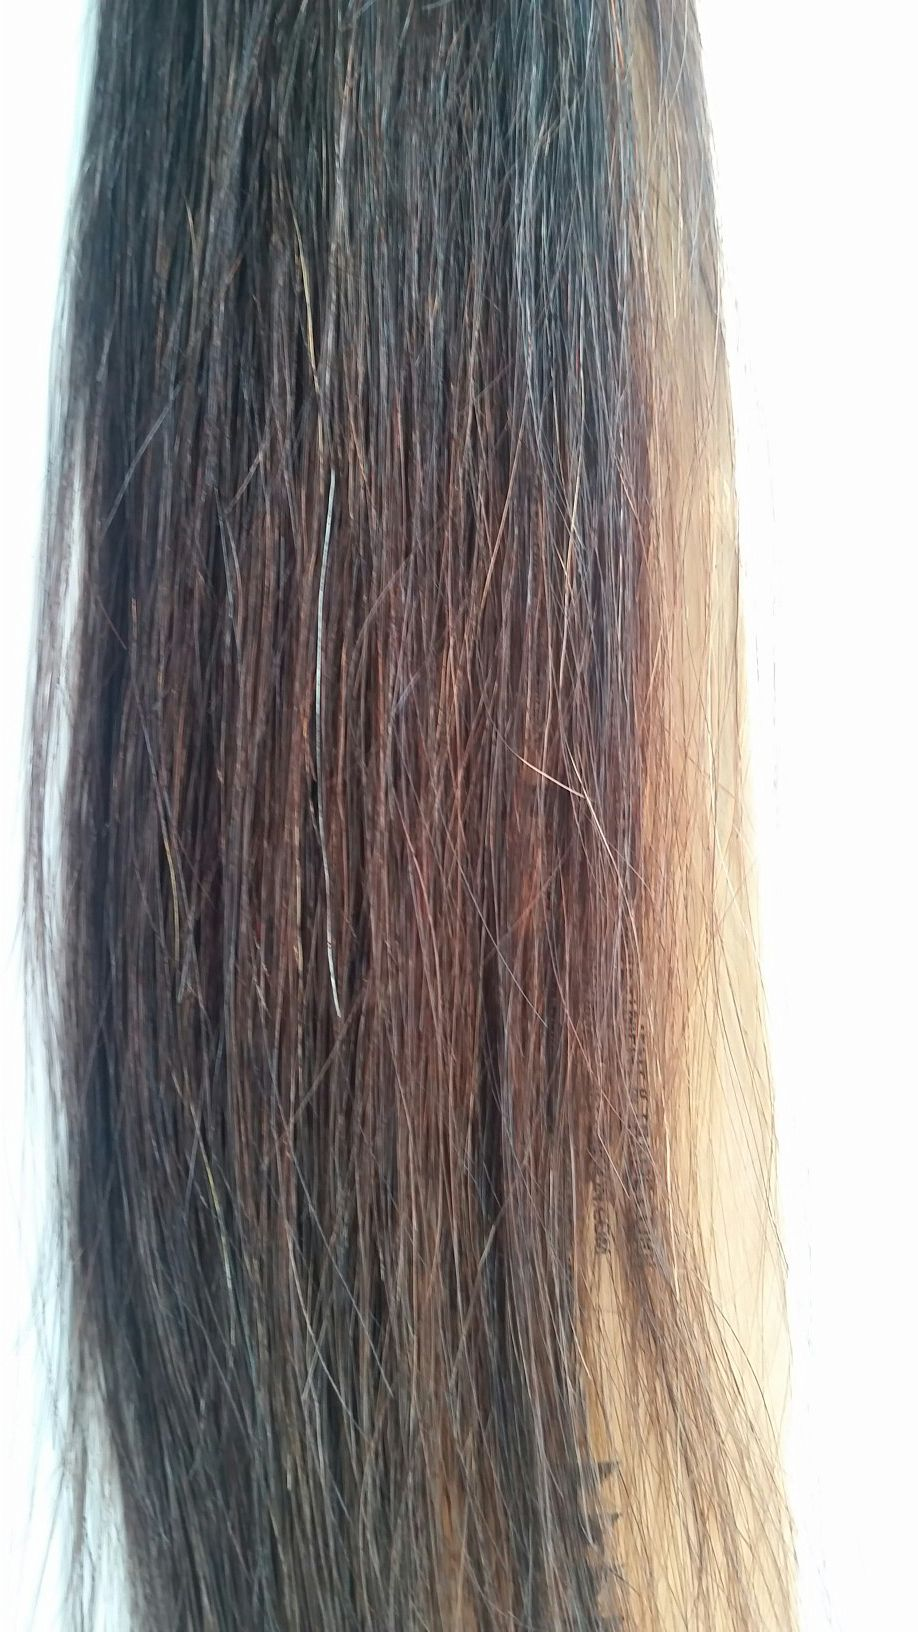 """22 """" itips human hair extensions Remy - brown #4 (5 packs )"""